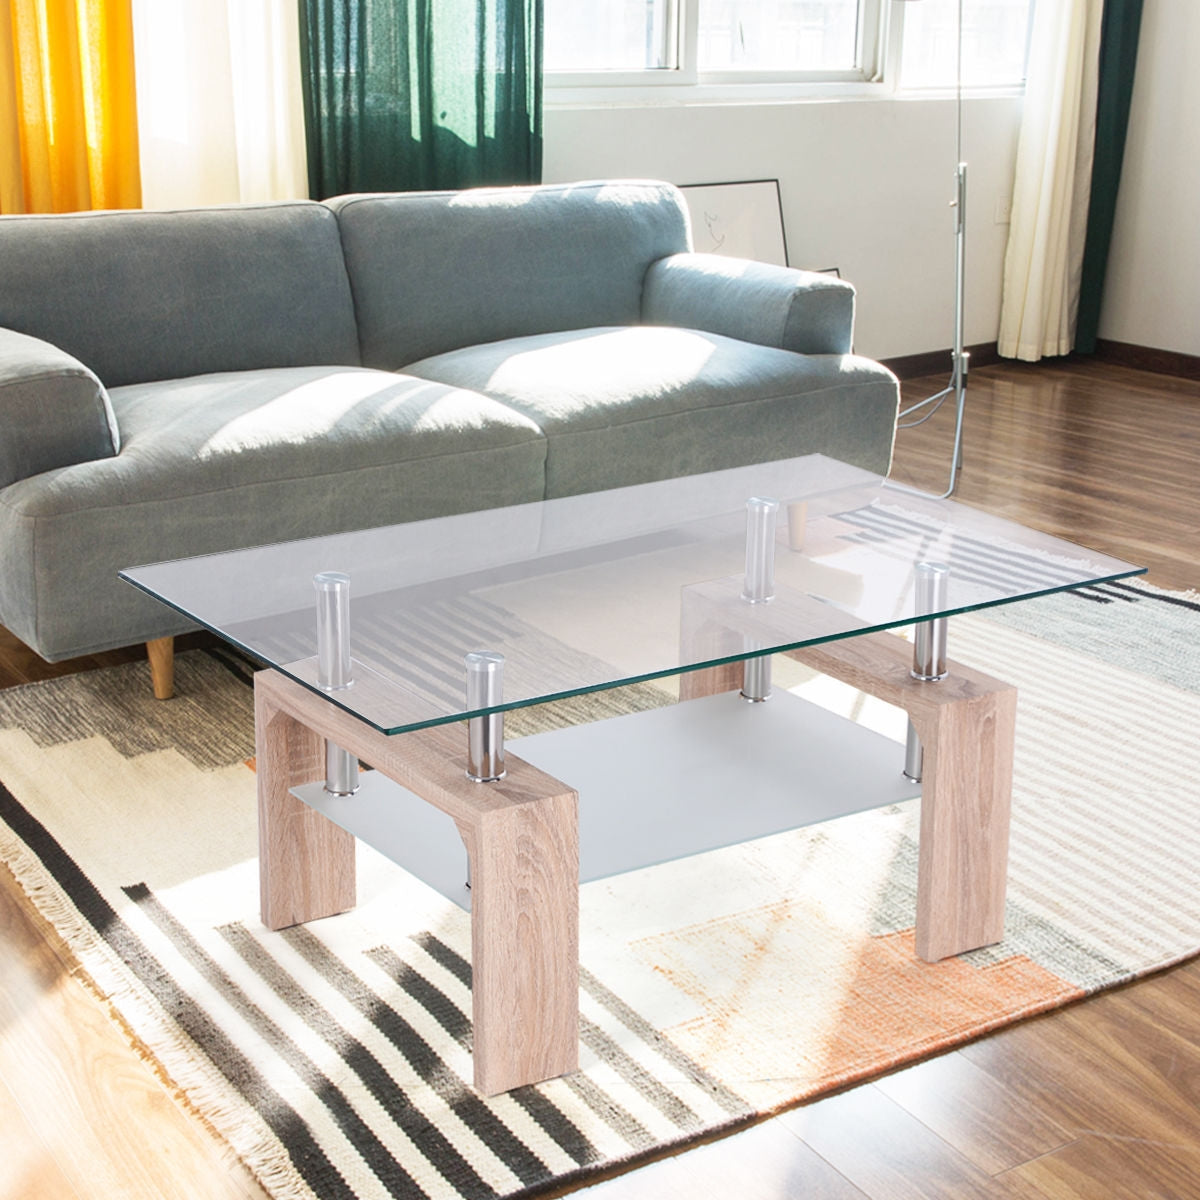 Living Room Rectangular Glass Wood Coffee Table with Shelf